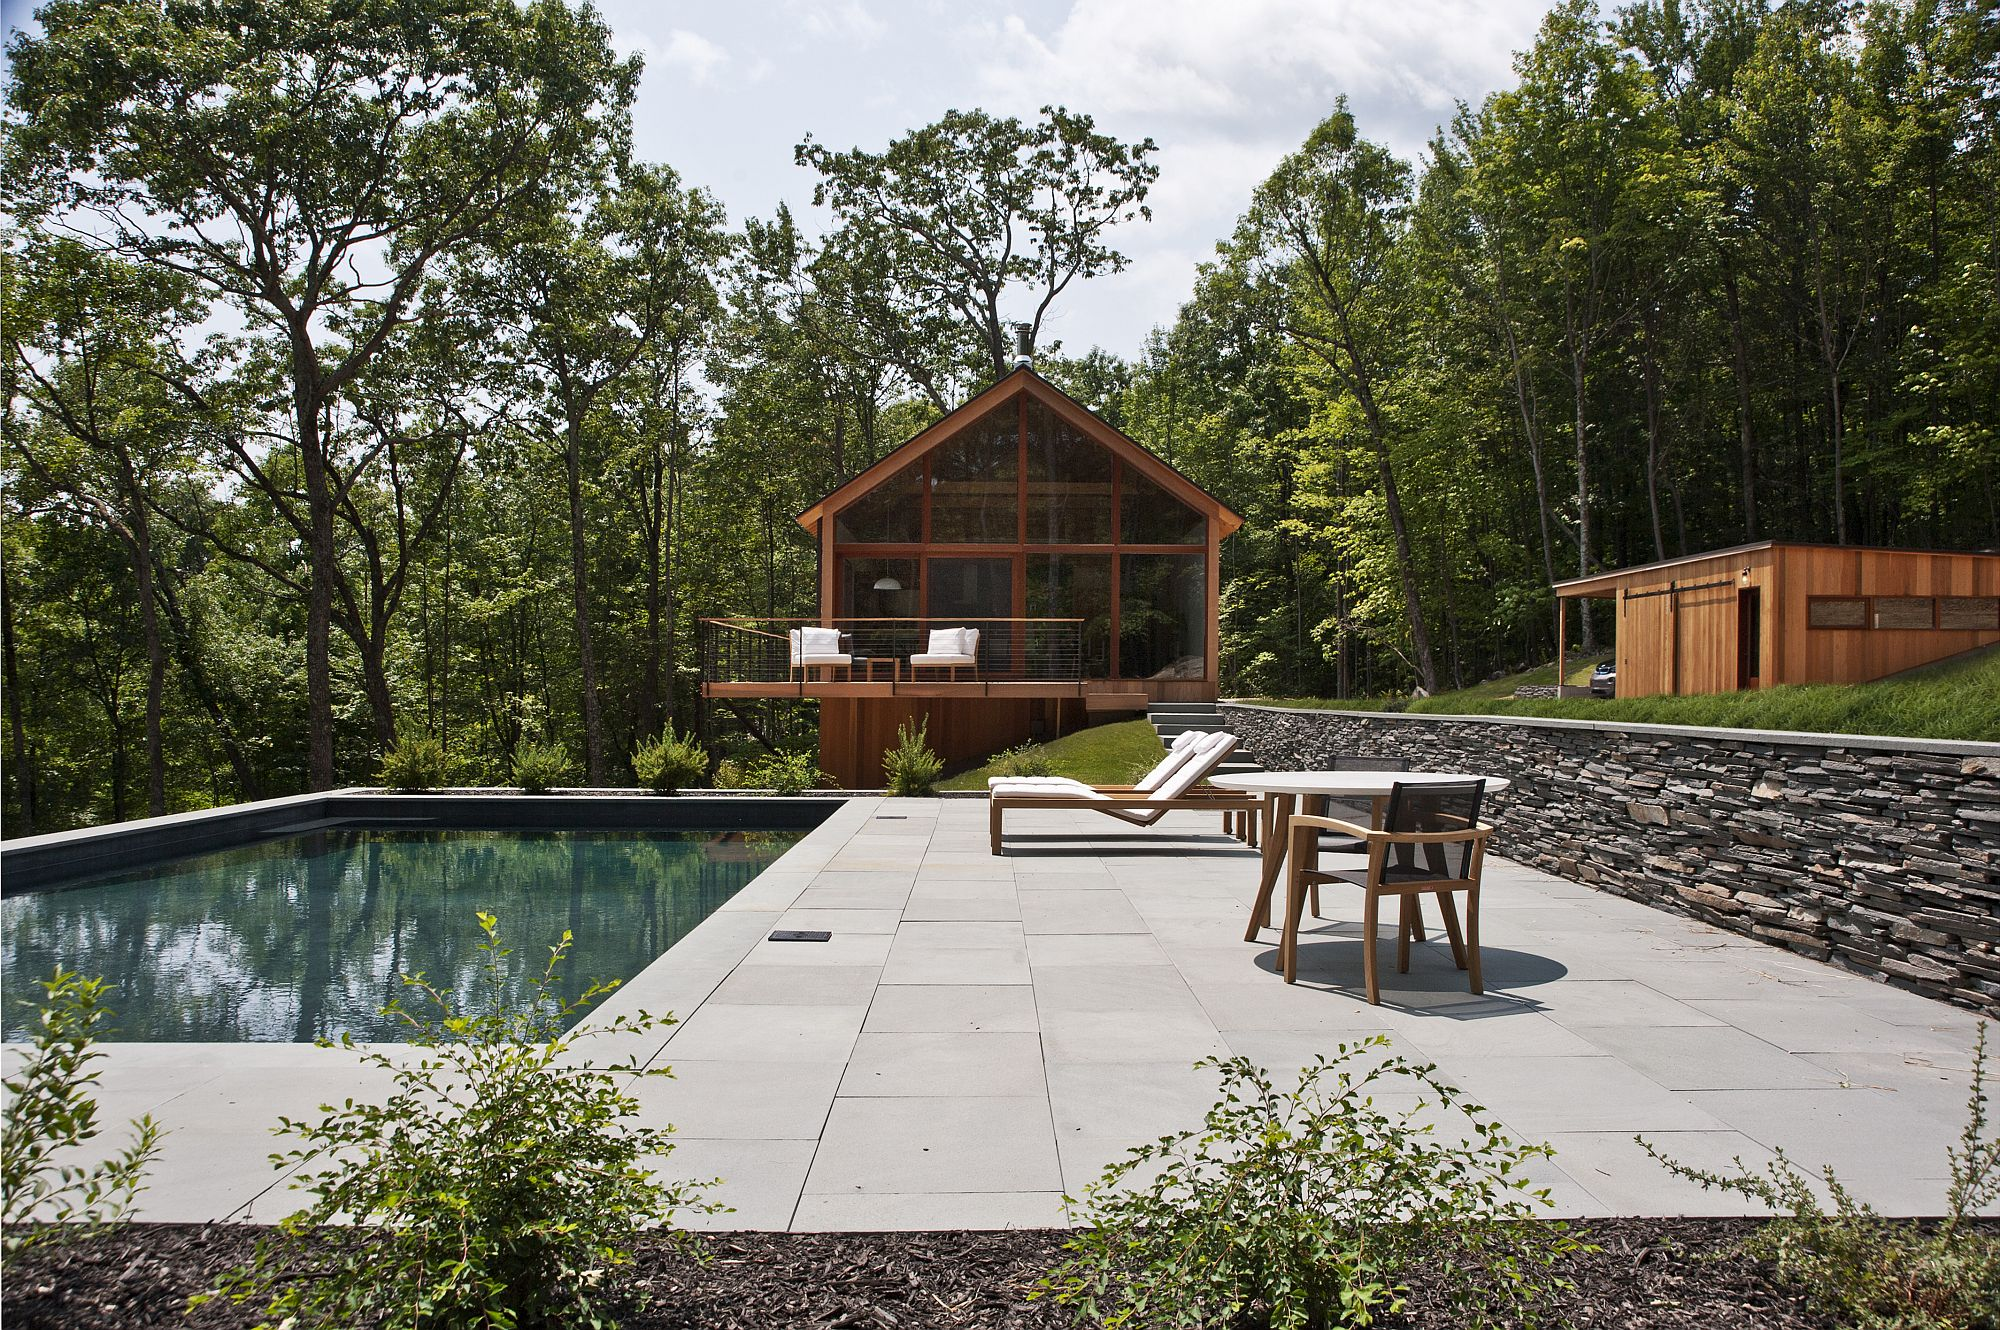 Upscale collection of modern cabins in the Catskills